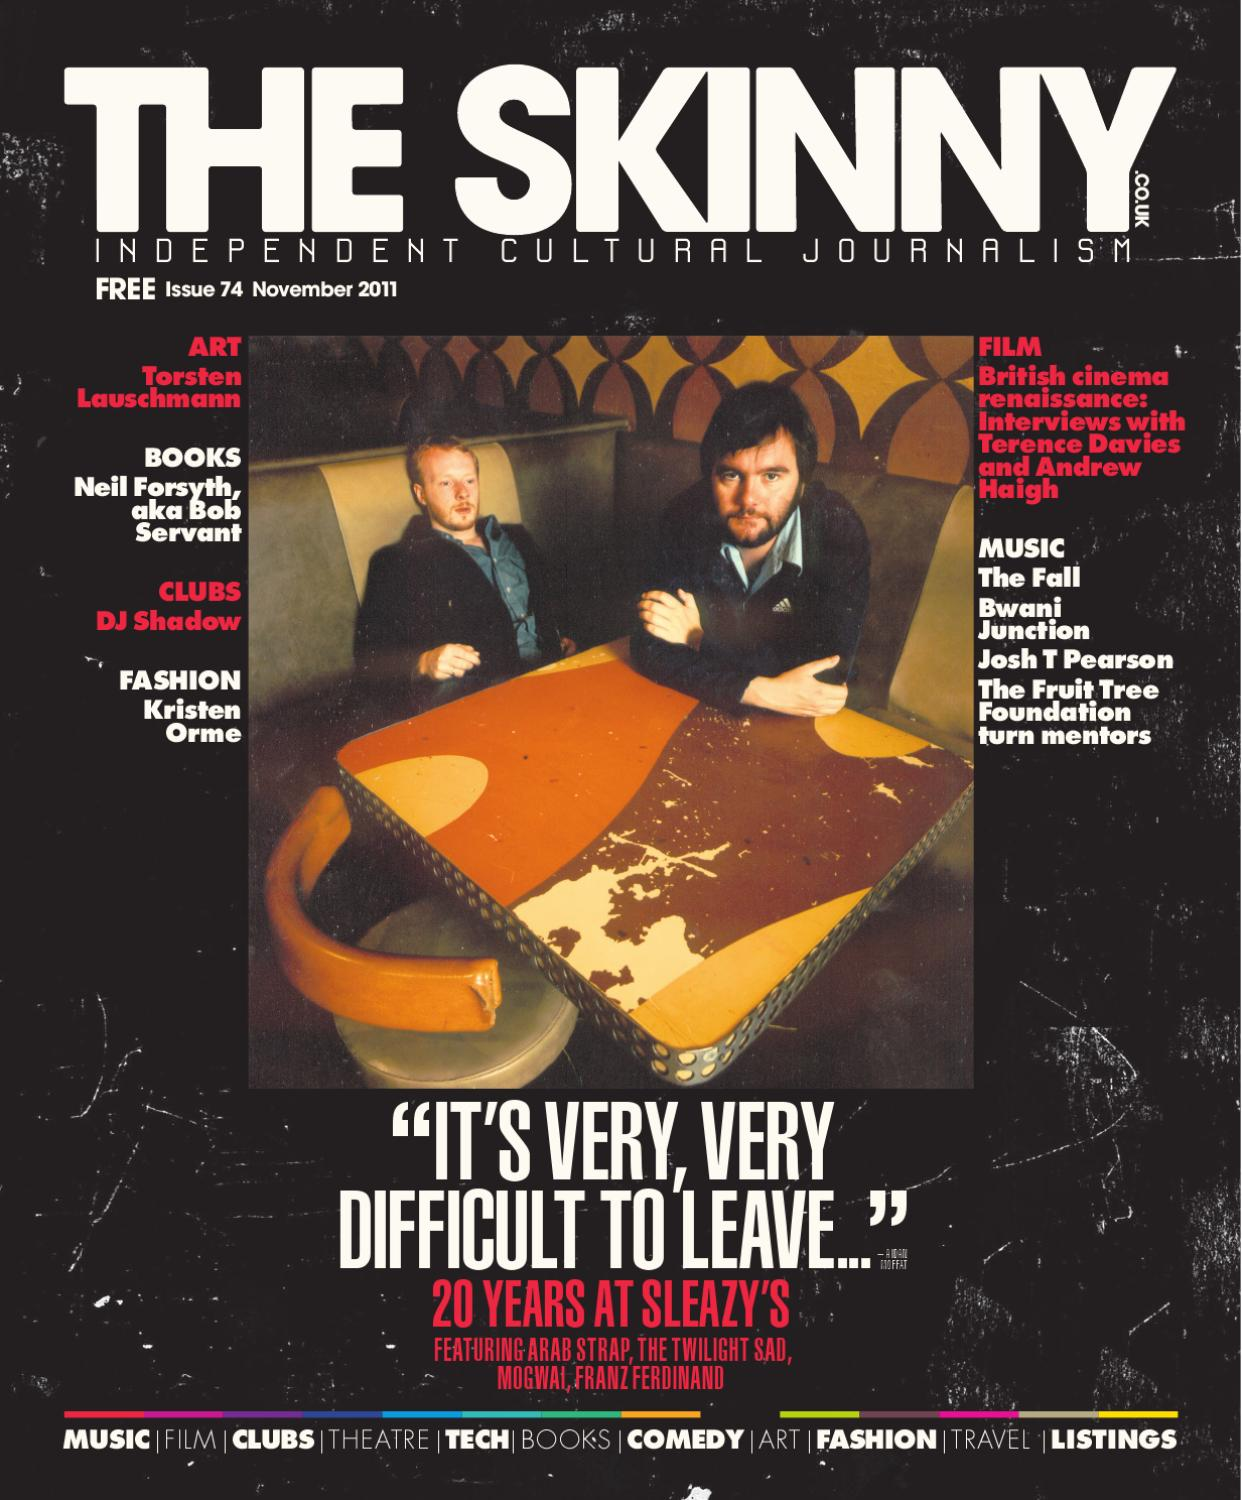 The Skinny November2011 By Issuu Pressure Cooker Tebus Double Pan Piknik Set Locksy